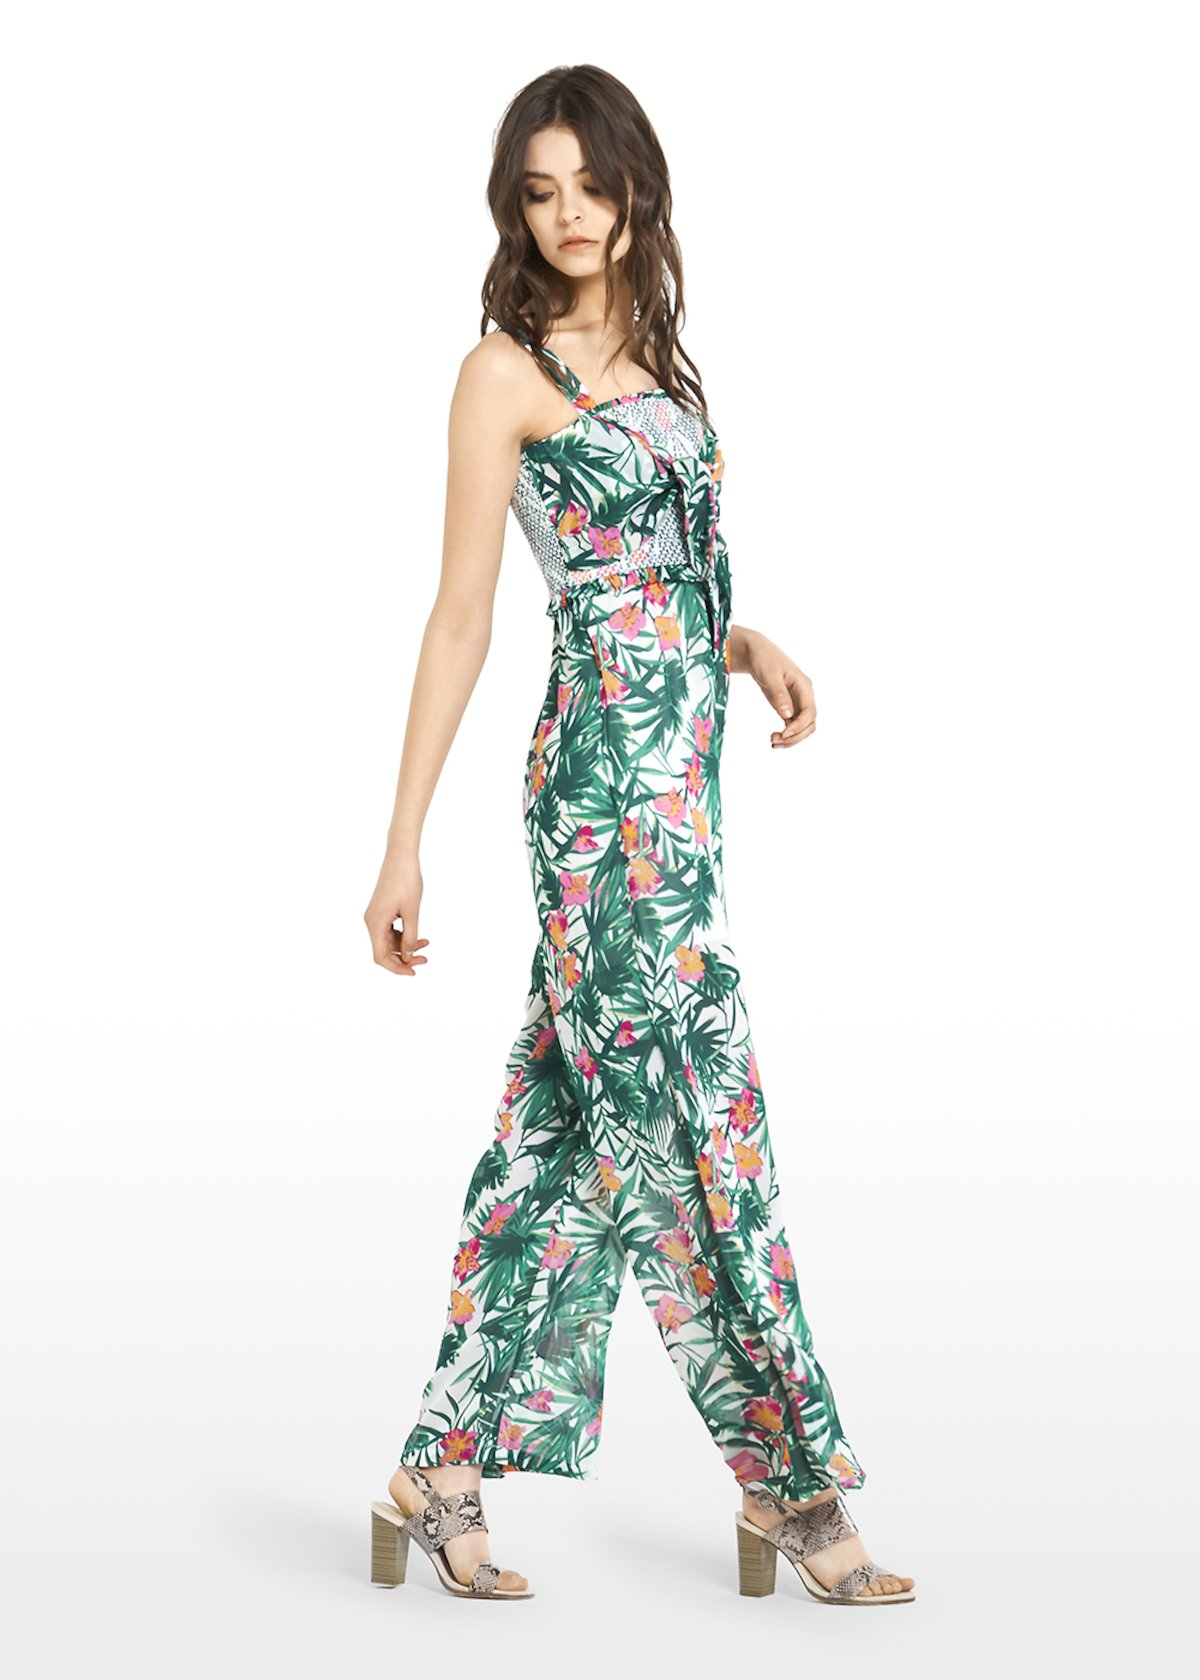 8a4e7848f587 Tiger georgette jumpsuit with bow detail - White\ Amazon\ Fantasia - Woman